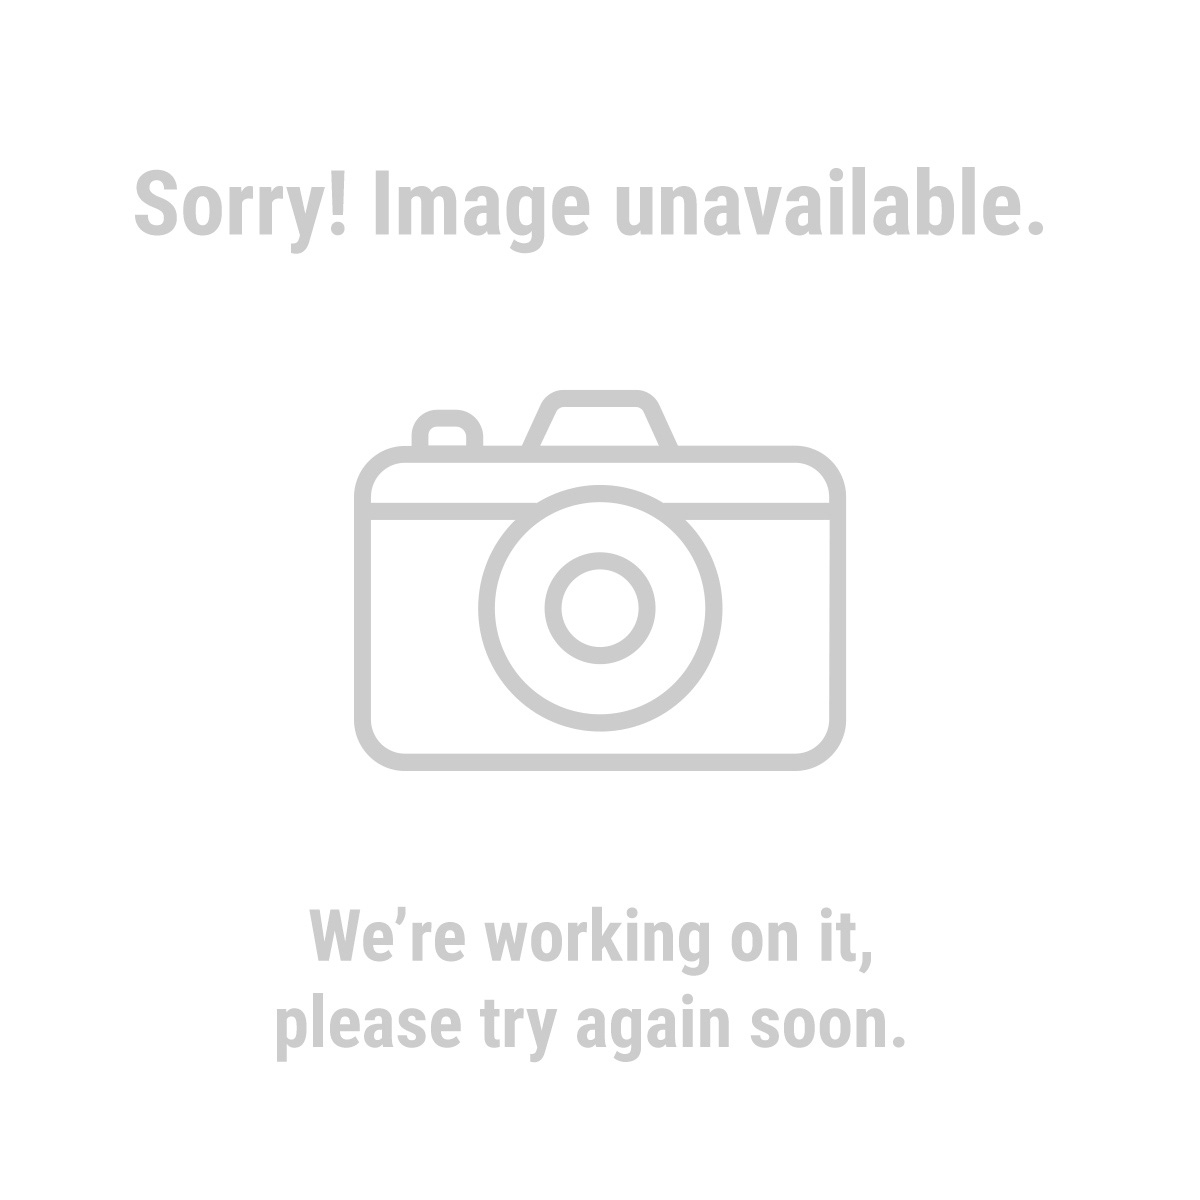 electric eel drain cleaner instructions